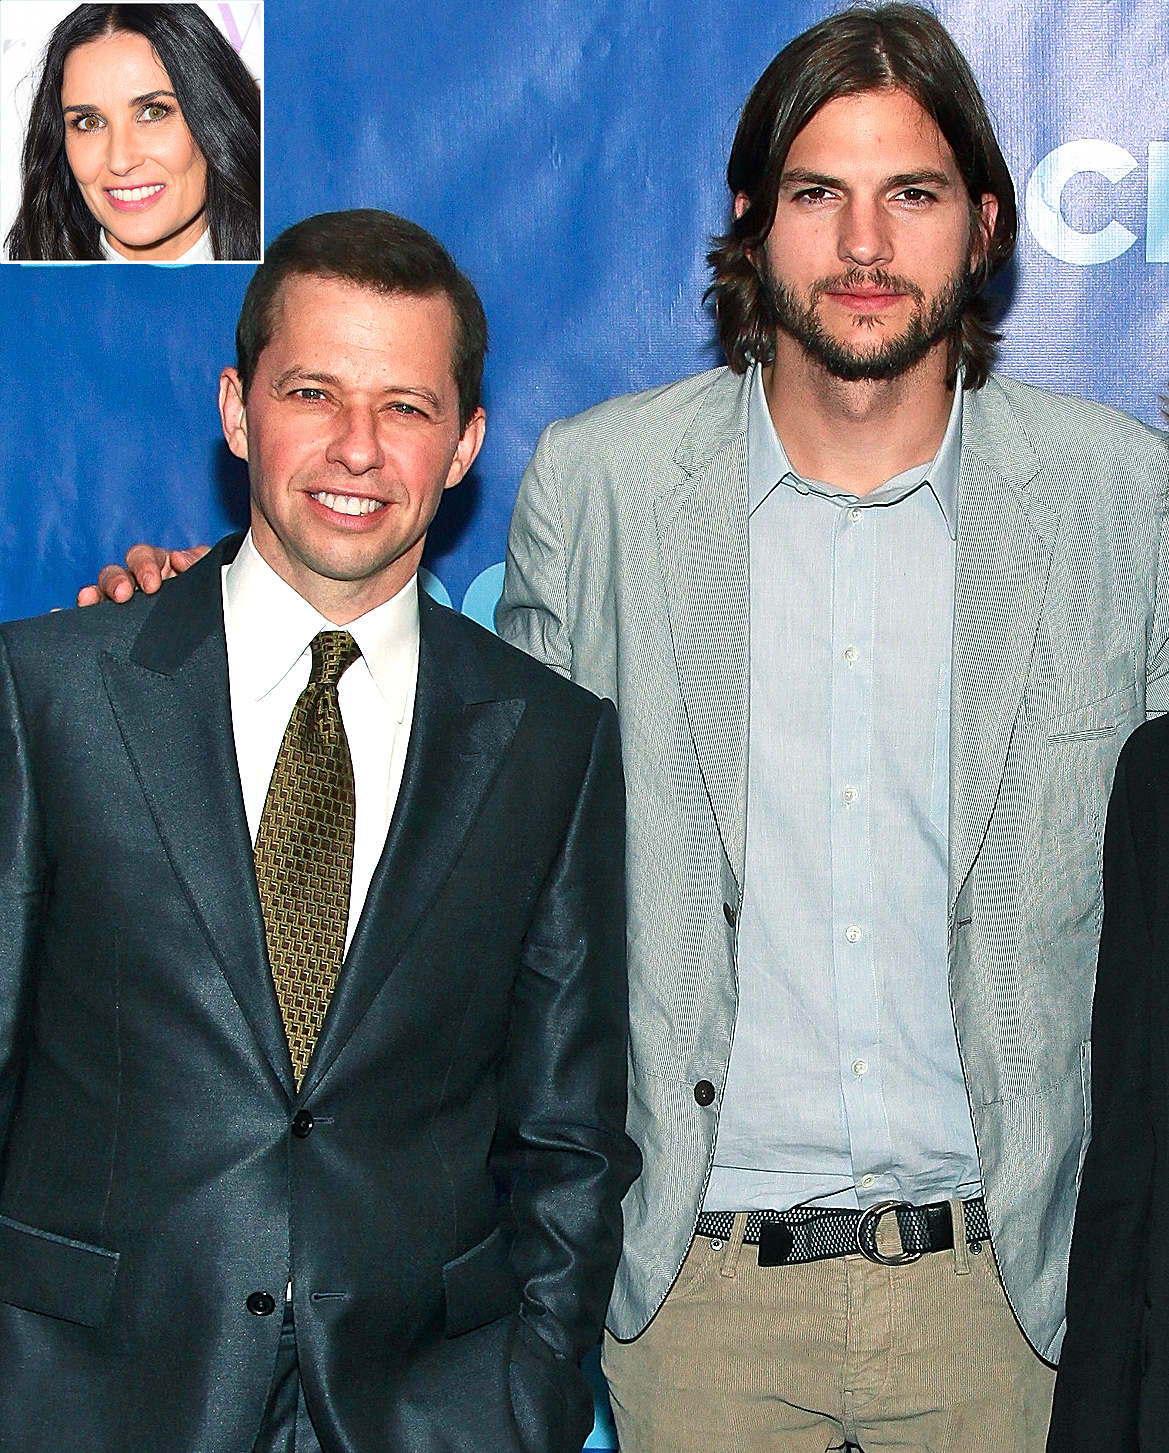 Jon Cryer, Ashton Kutcher, Demi Moore